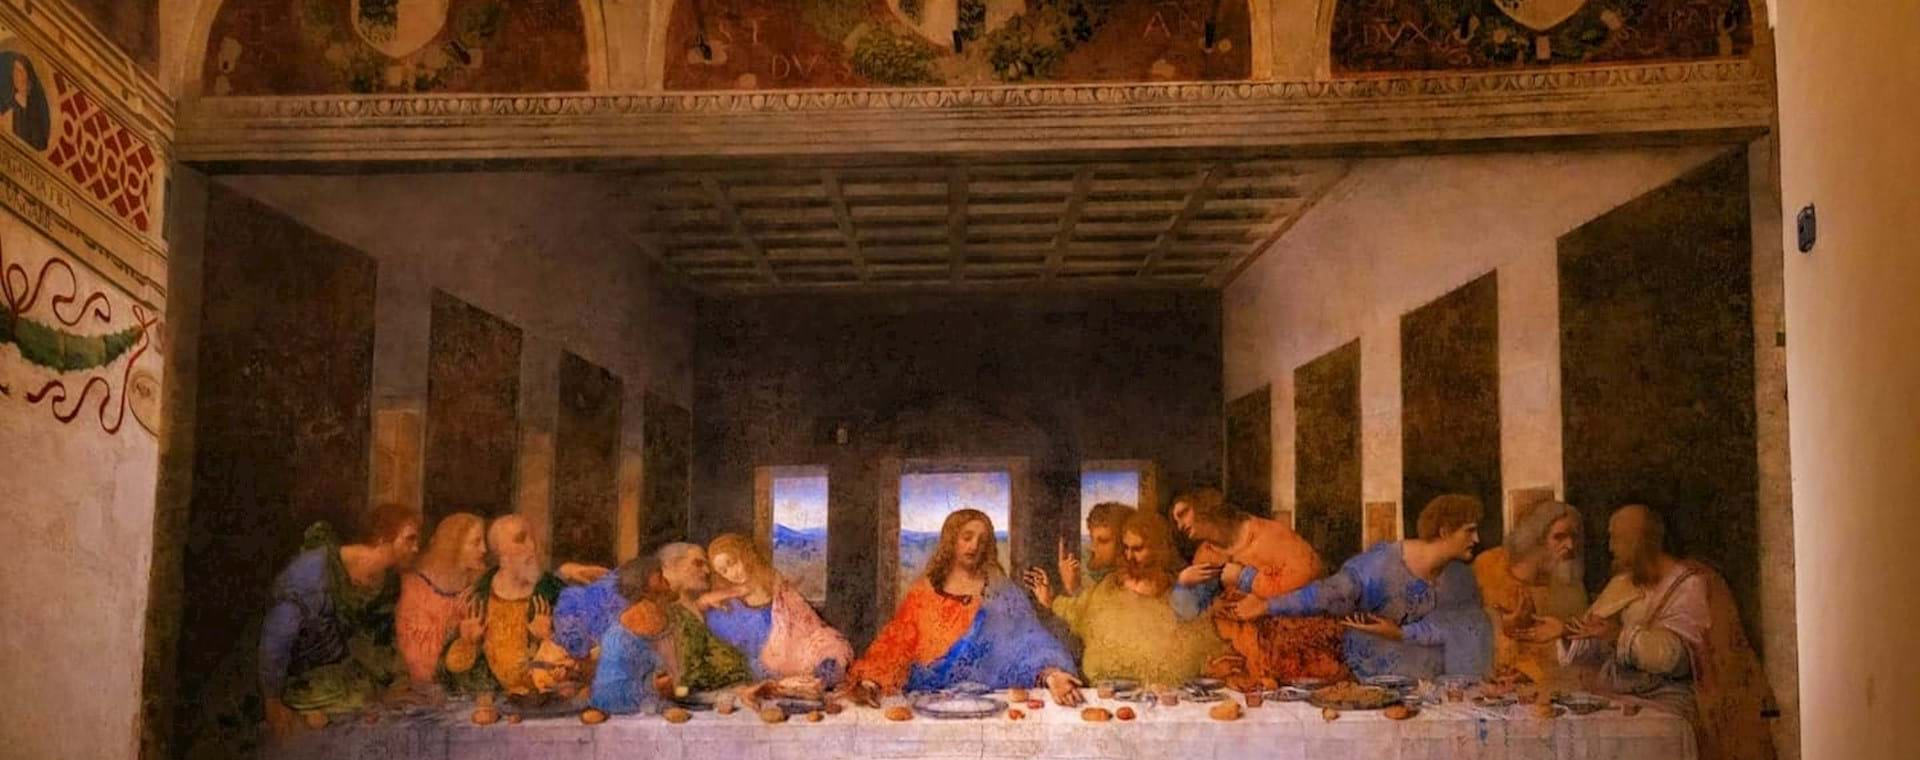 Da Vinci's 'Last Supper' Tickets with Expert Commentary